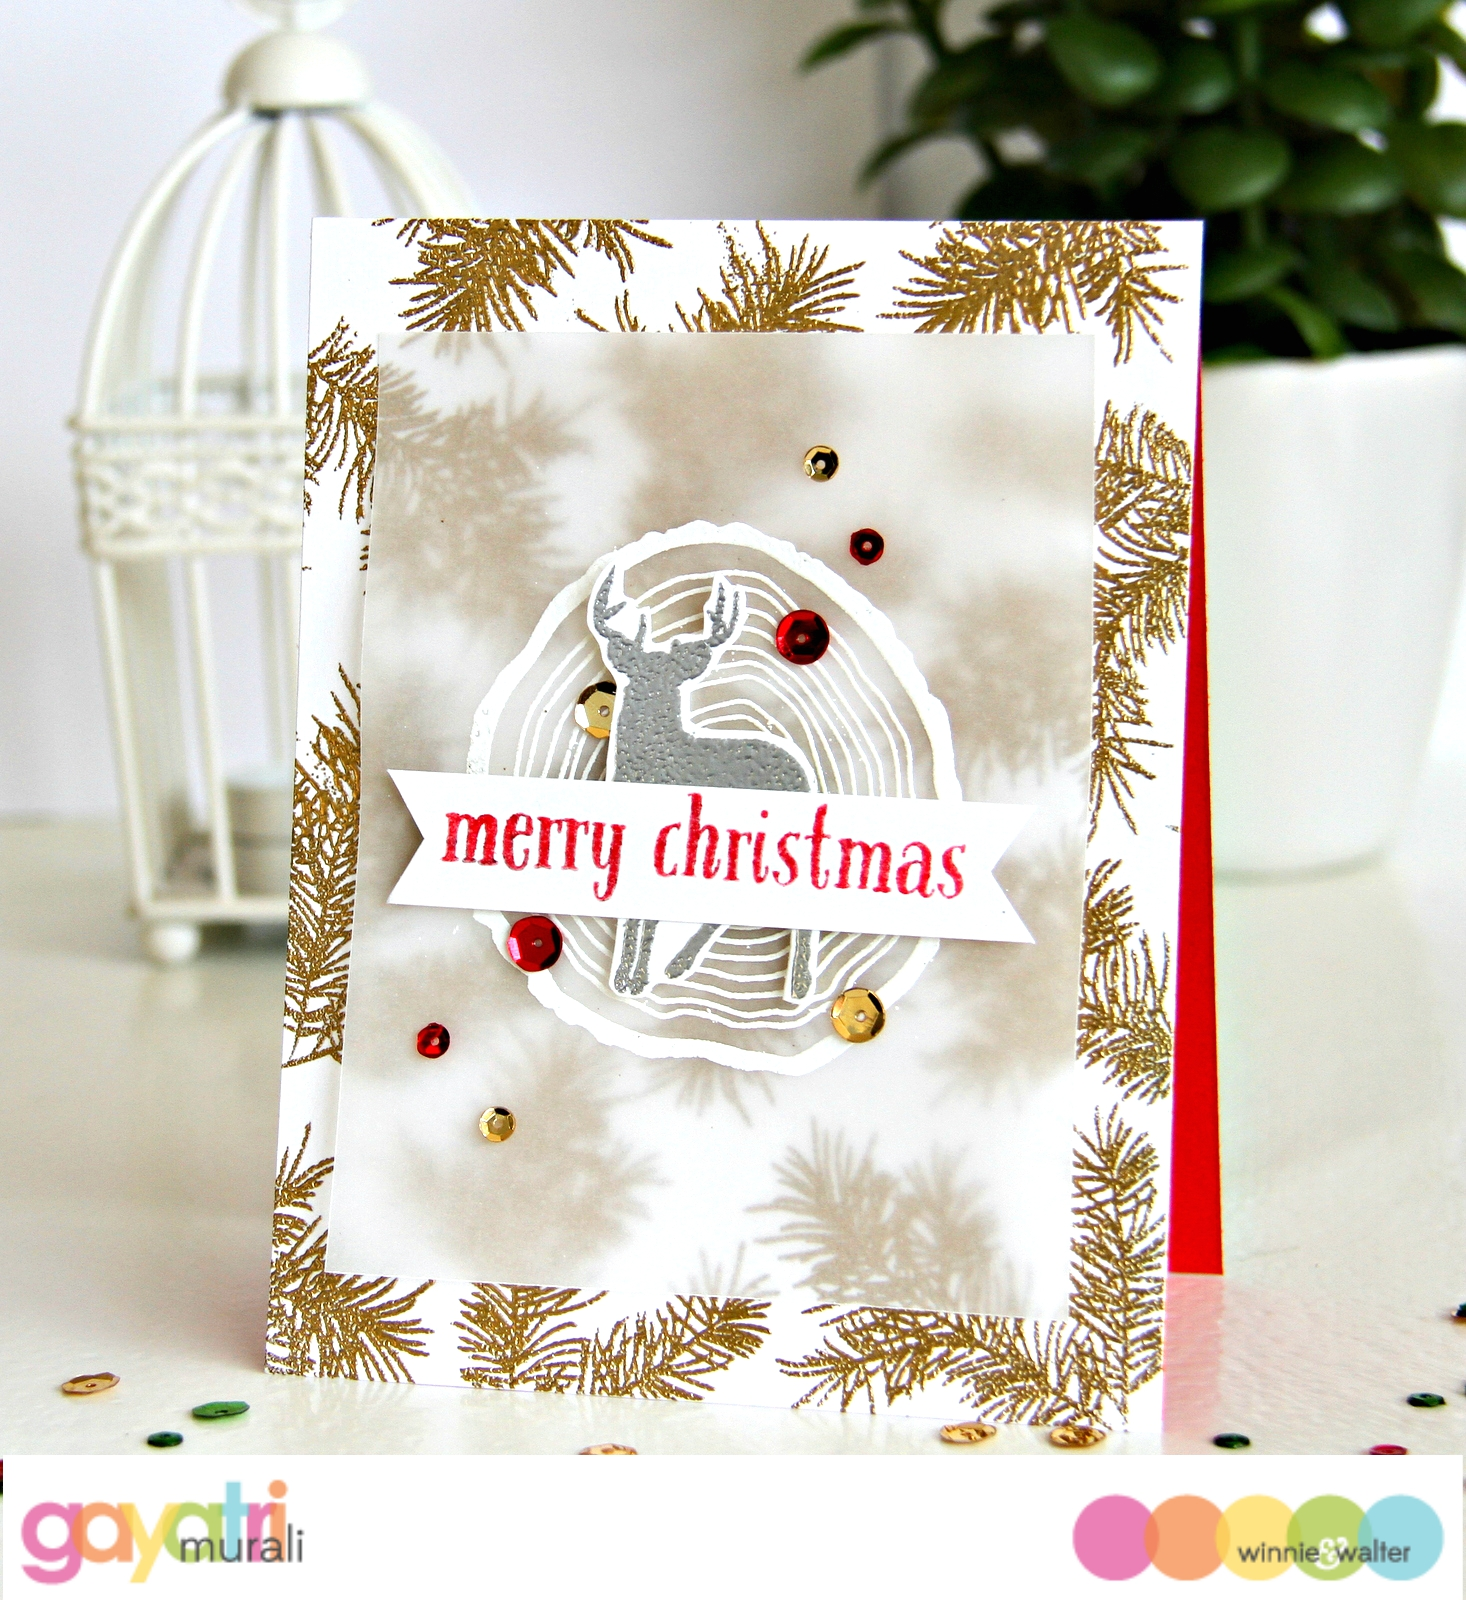 Merry Christmas card1